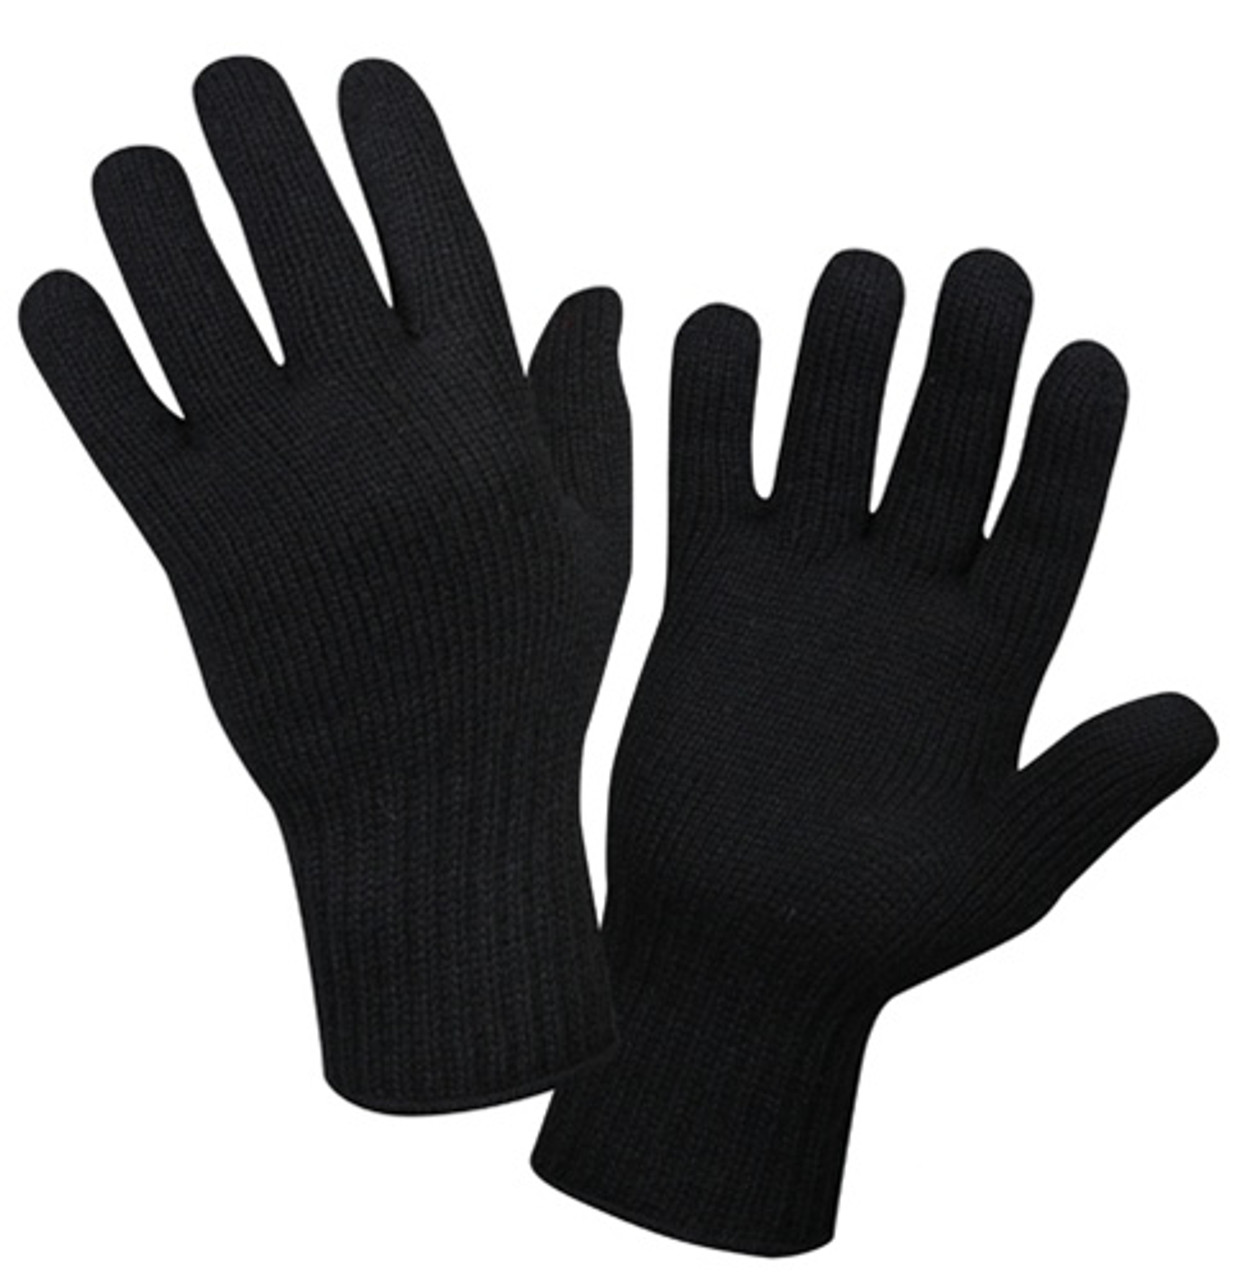 Black Wool Glove Liners from Hessen Antique